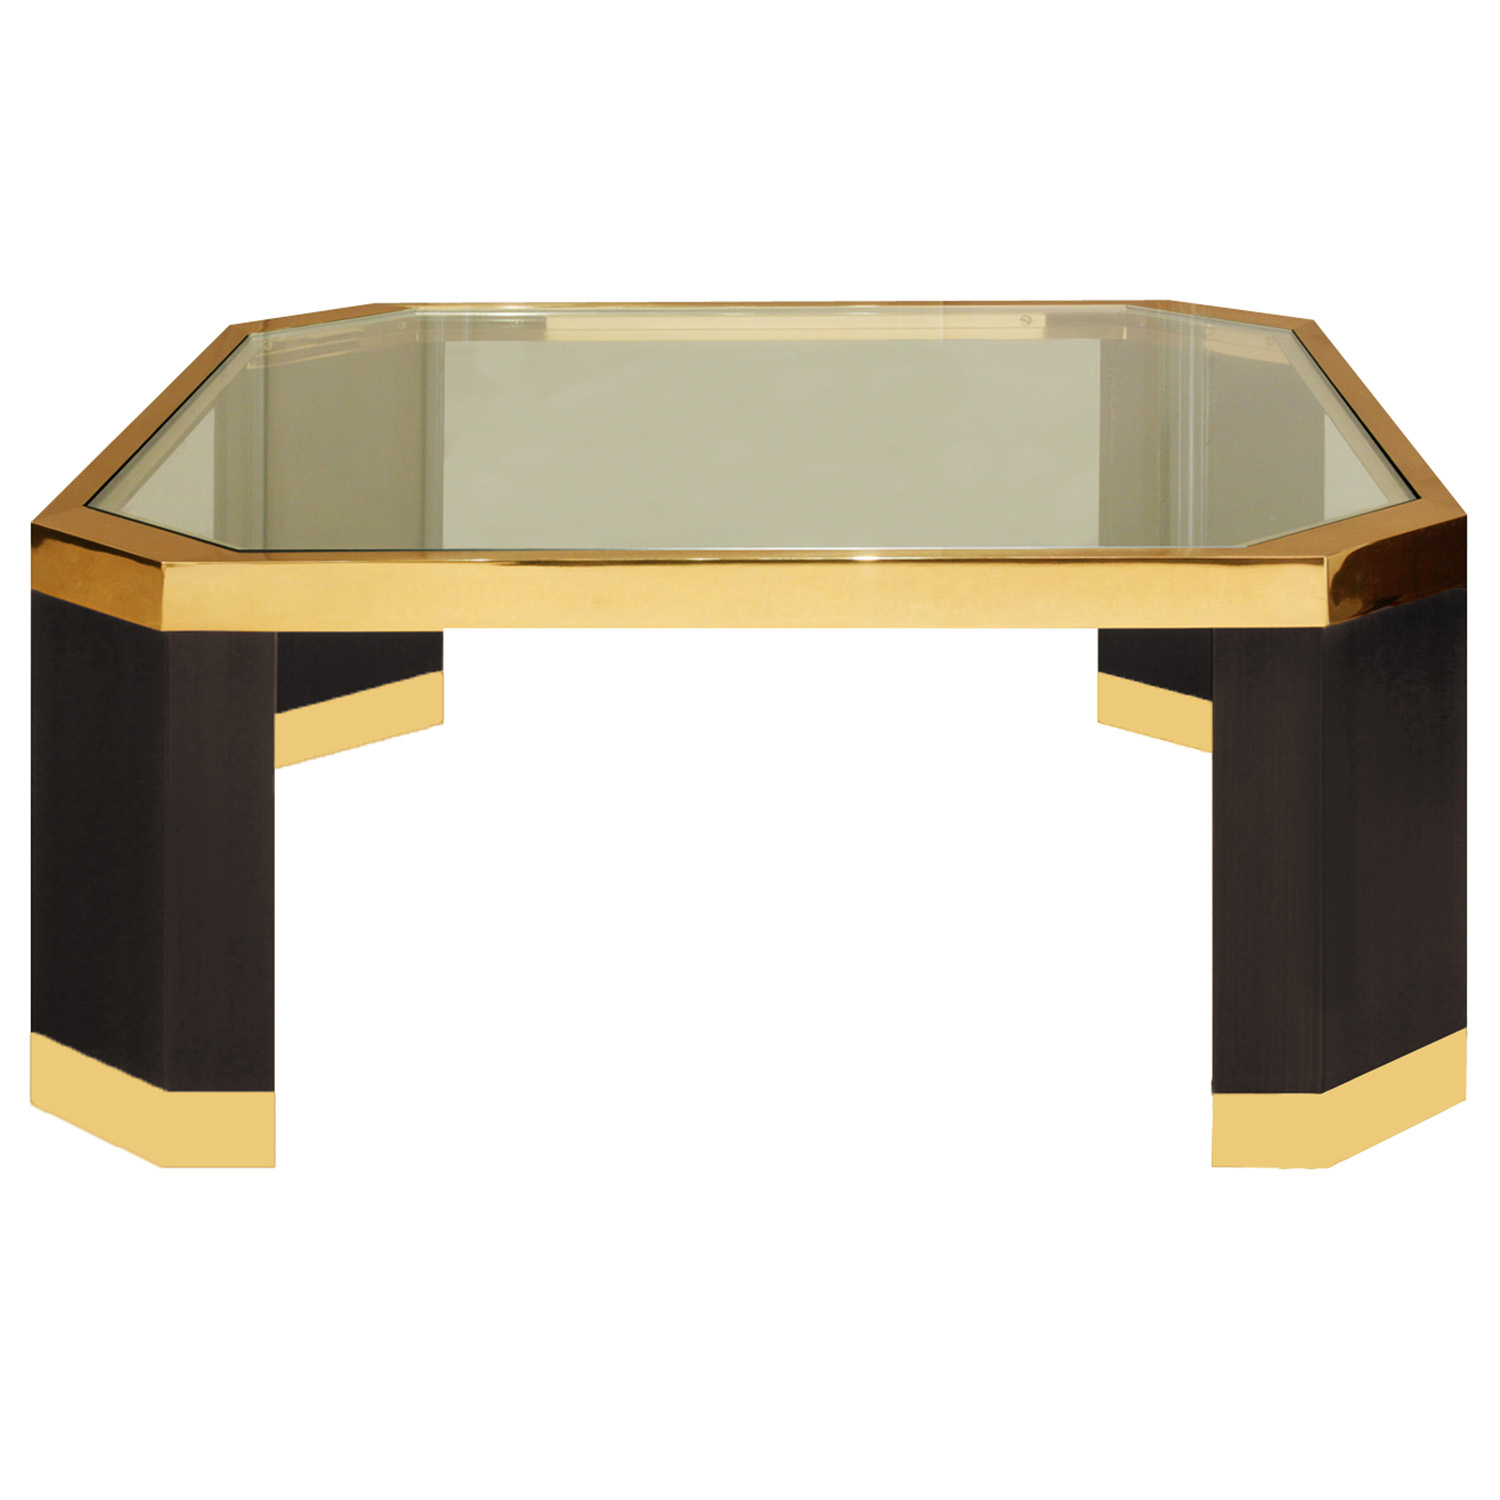 Seff 85 gunmetalbrassglass coffeetable86 hires main.jpg